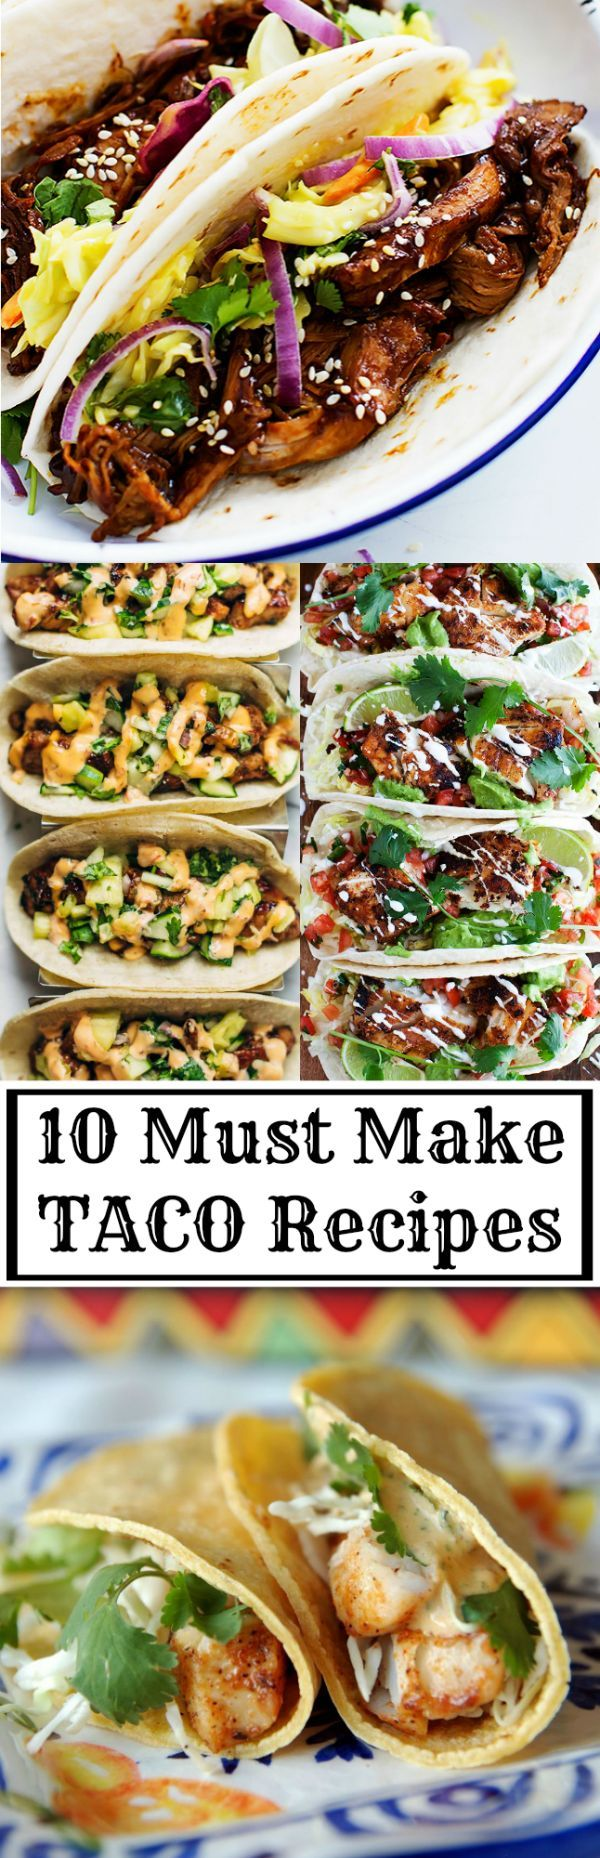 10 Must Make Taco Recipes